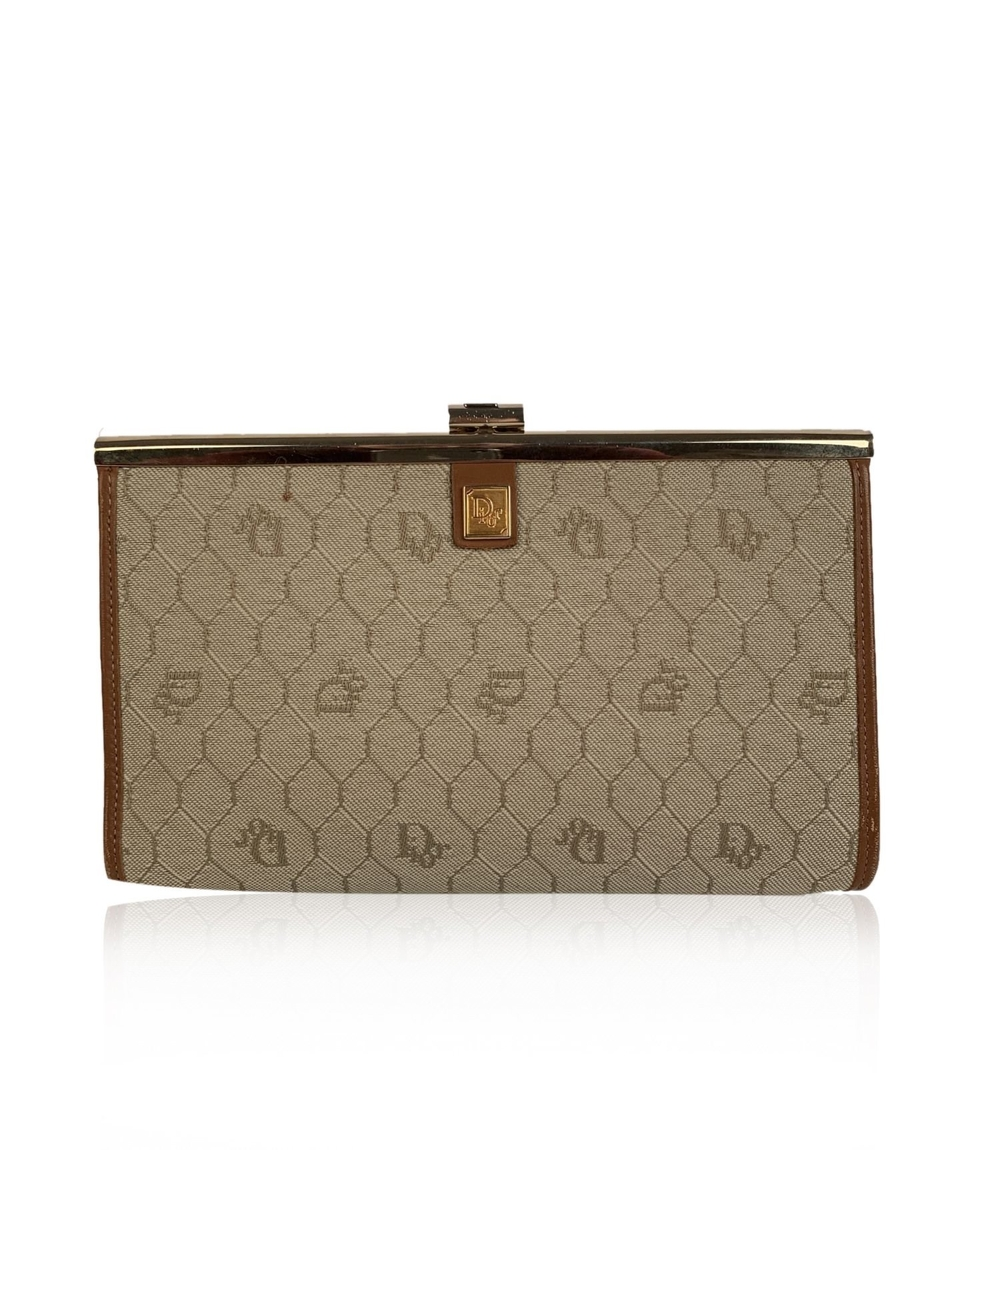 Vintage CHRISTIAN DIOR beige logo canvas with tan leather trim. Clasp closure on top. Beige leather